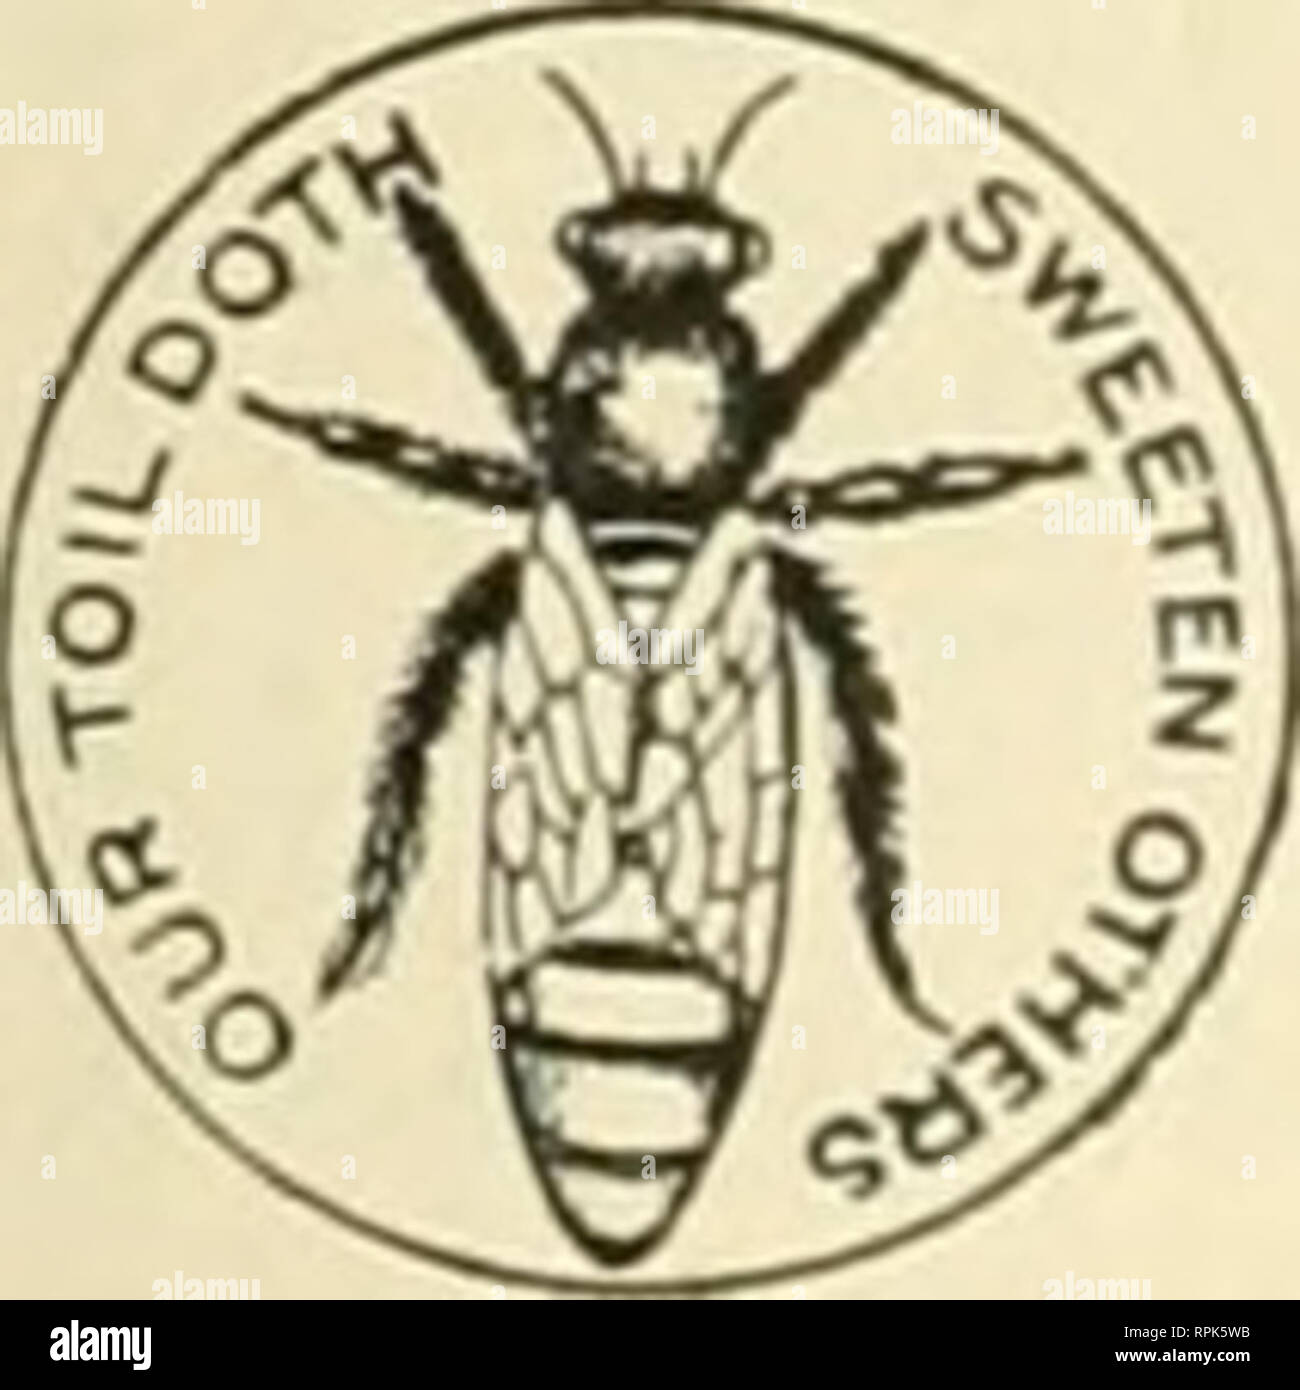 . American bee journal. Bee culture; Bees. 280 AMERICAN BEE JOURNAL, May 2, 1901. are a few varieties of fruit deficient in pollen, is well known to all intellig-ent fruit growers, and they know equally as well that it is not necessary to have bees to accomplish this cross-polleuization, and do not depend upon them, but successfully manage it in another way. It is found that all that is necessary is, to plant these trees defi- cient in pollen, near some variety that produces pollen abundantly. In large orchards it is accomplisht by plant- ing the different varieties in alternate strips of seve - Stock Image